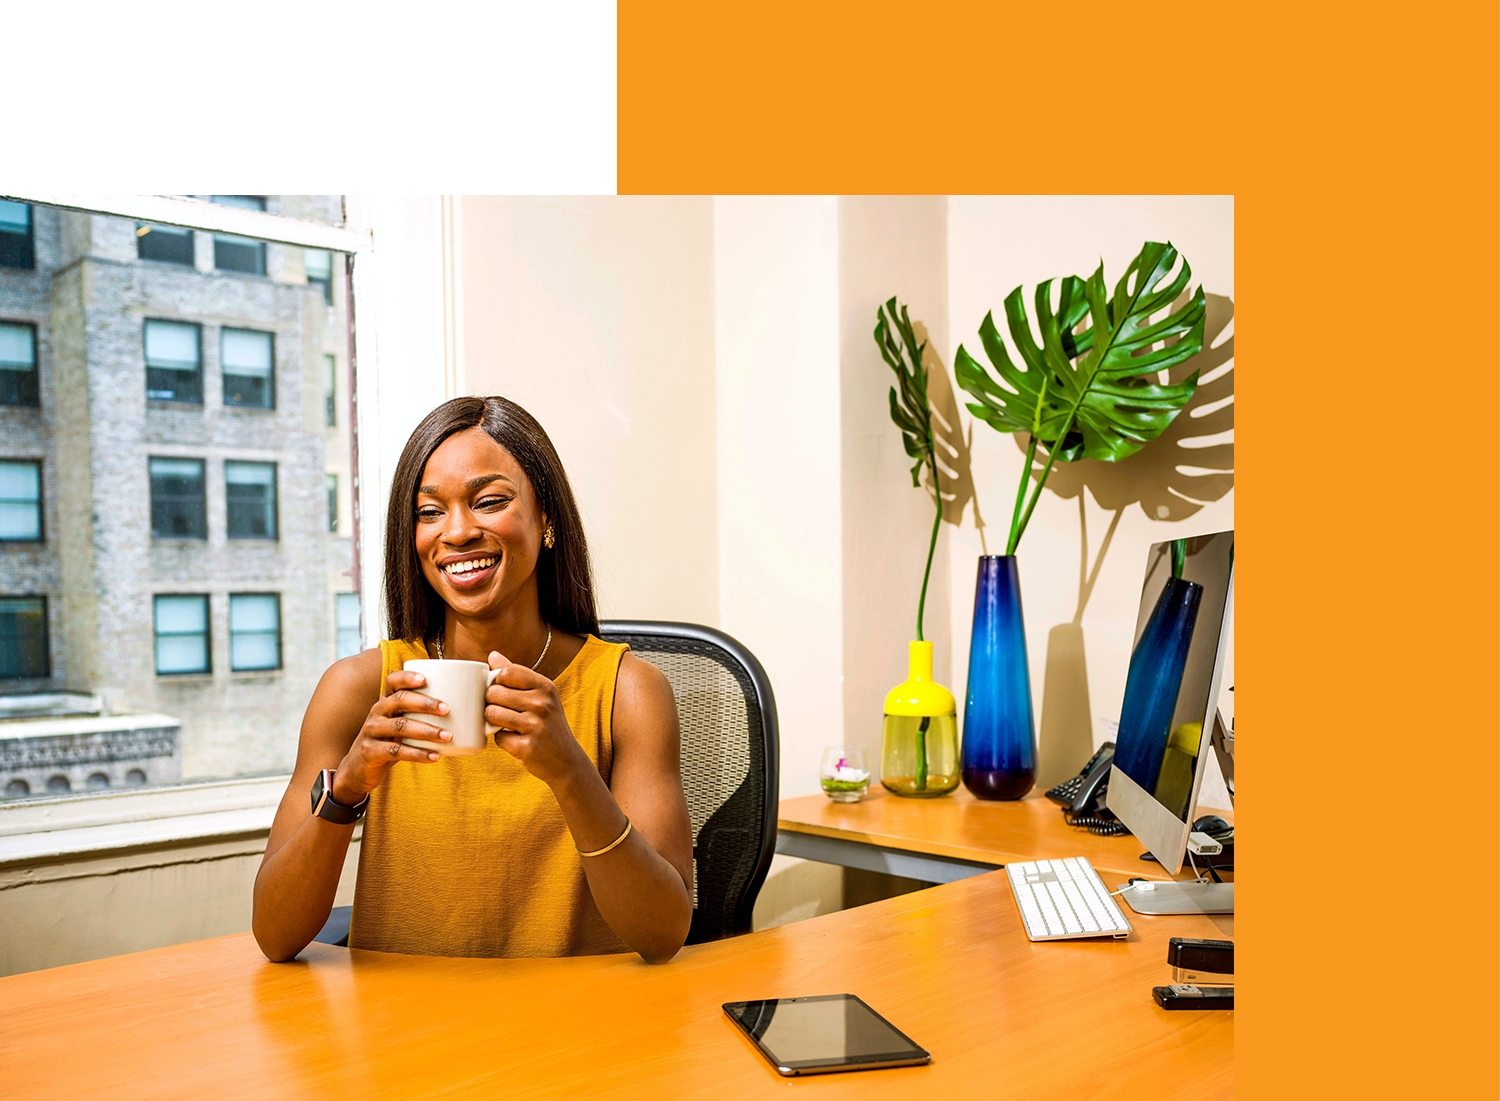 Woman holding a cup in an office